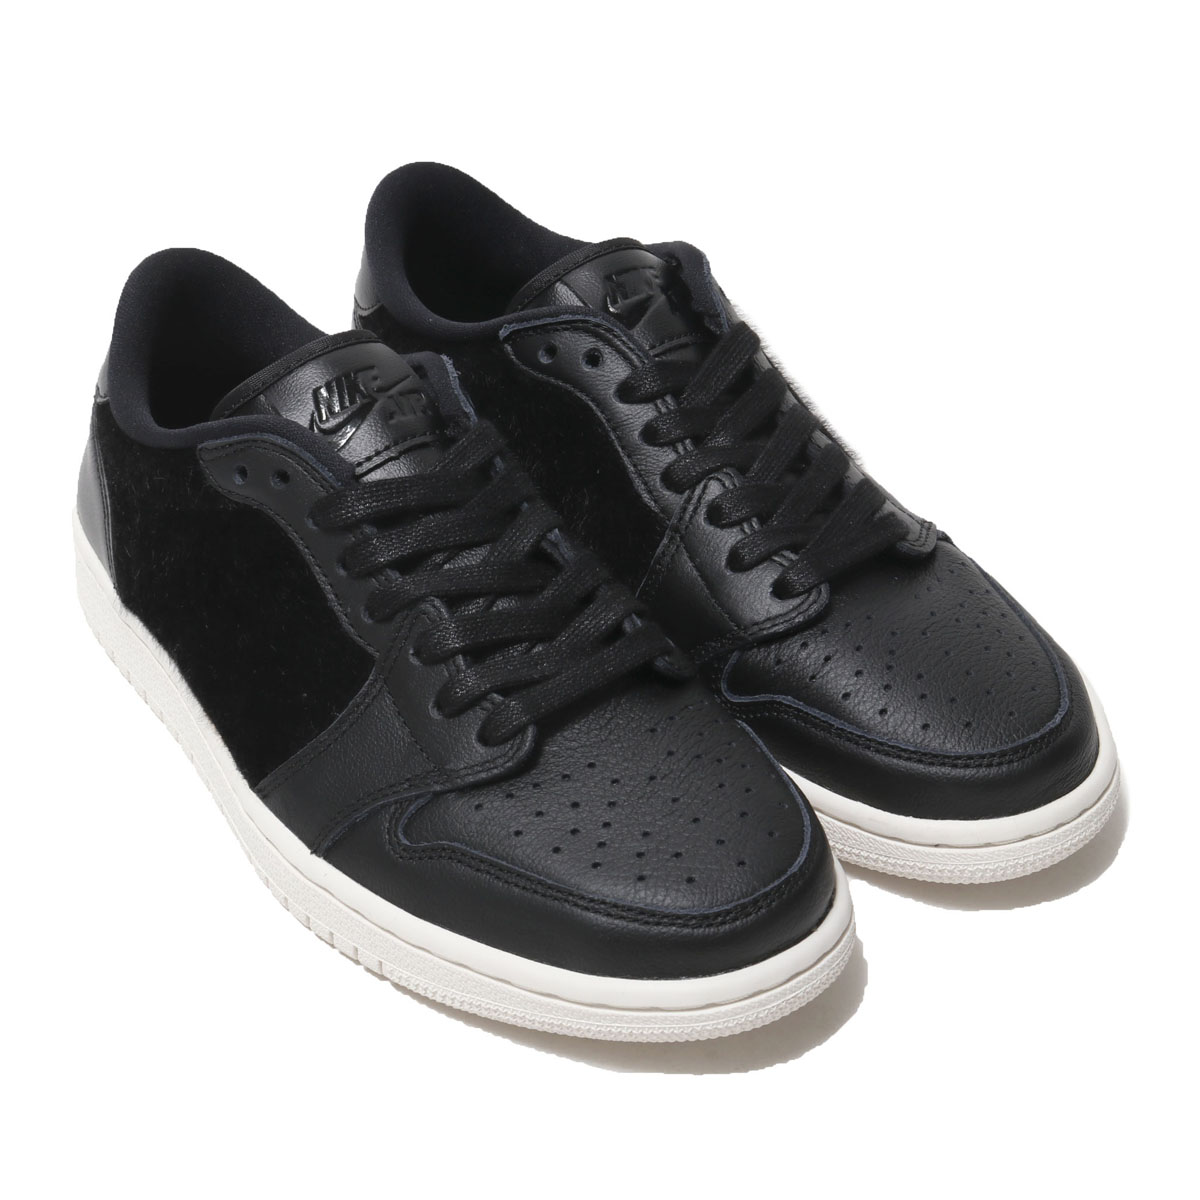 4618f74c73b Kinetics: NIKE WMNS AIR JORDAN 1 RETRO LOW NS (BLACK/BLACK-SAIL ...